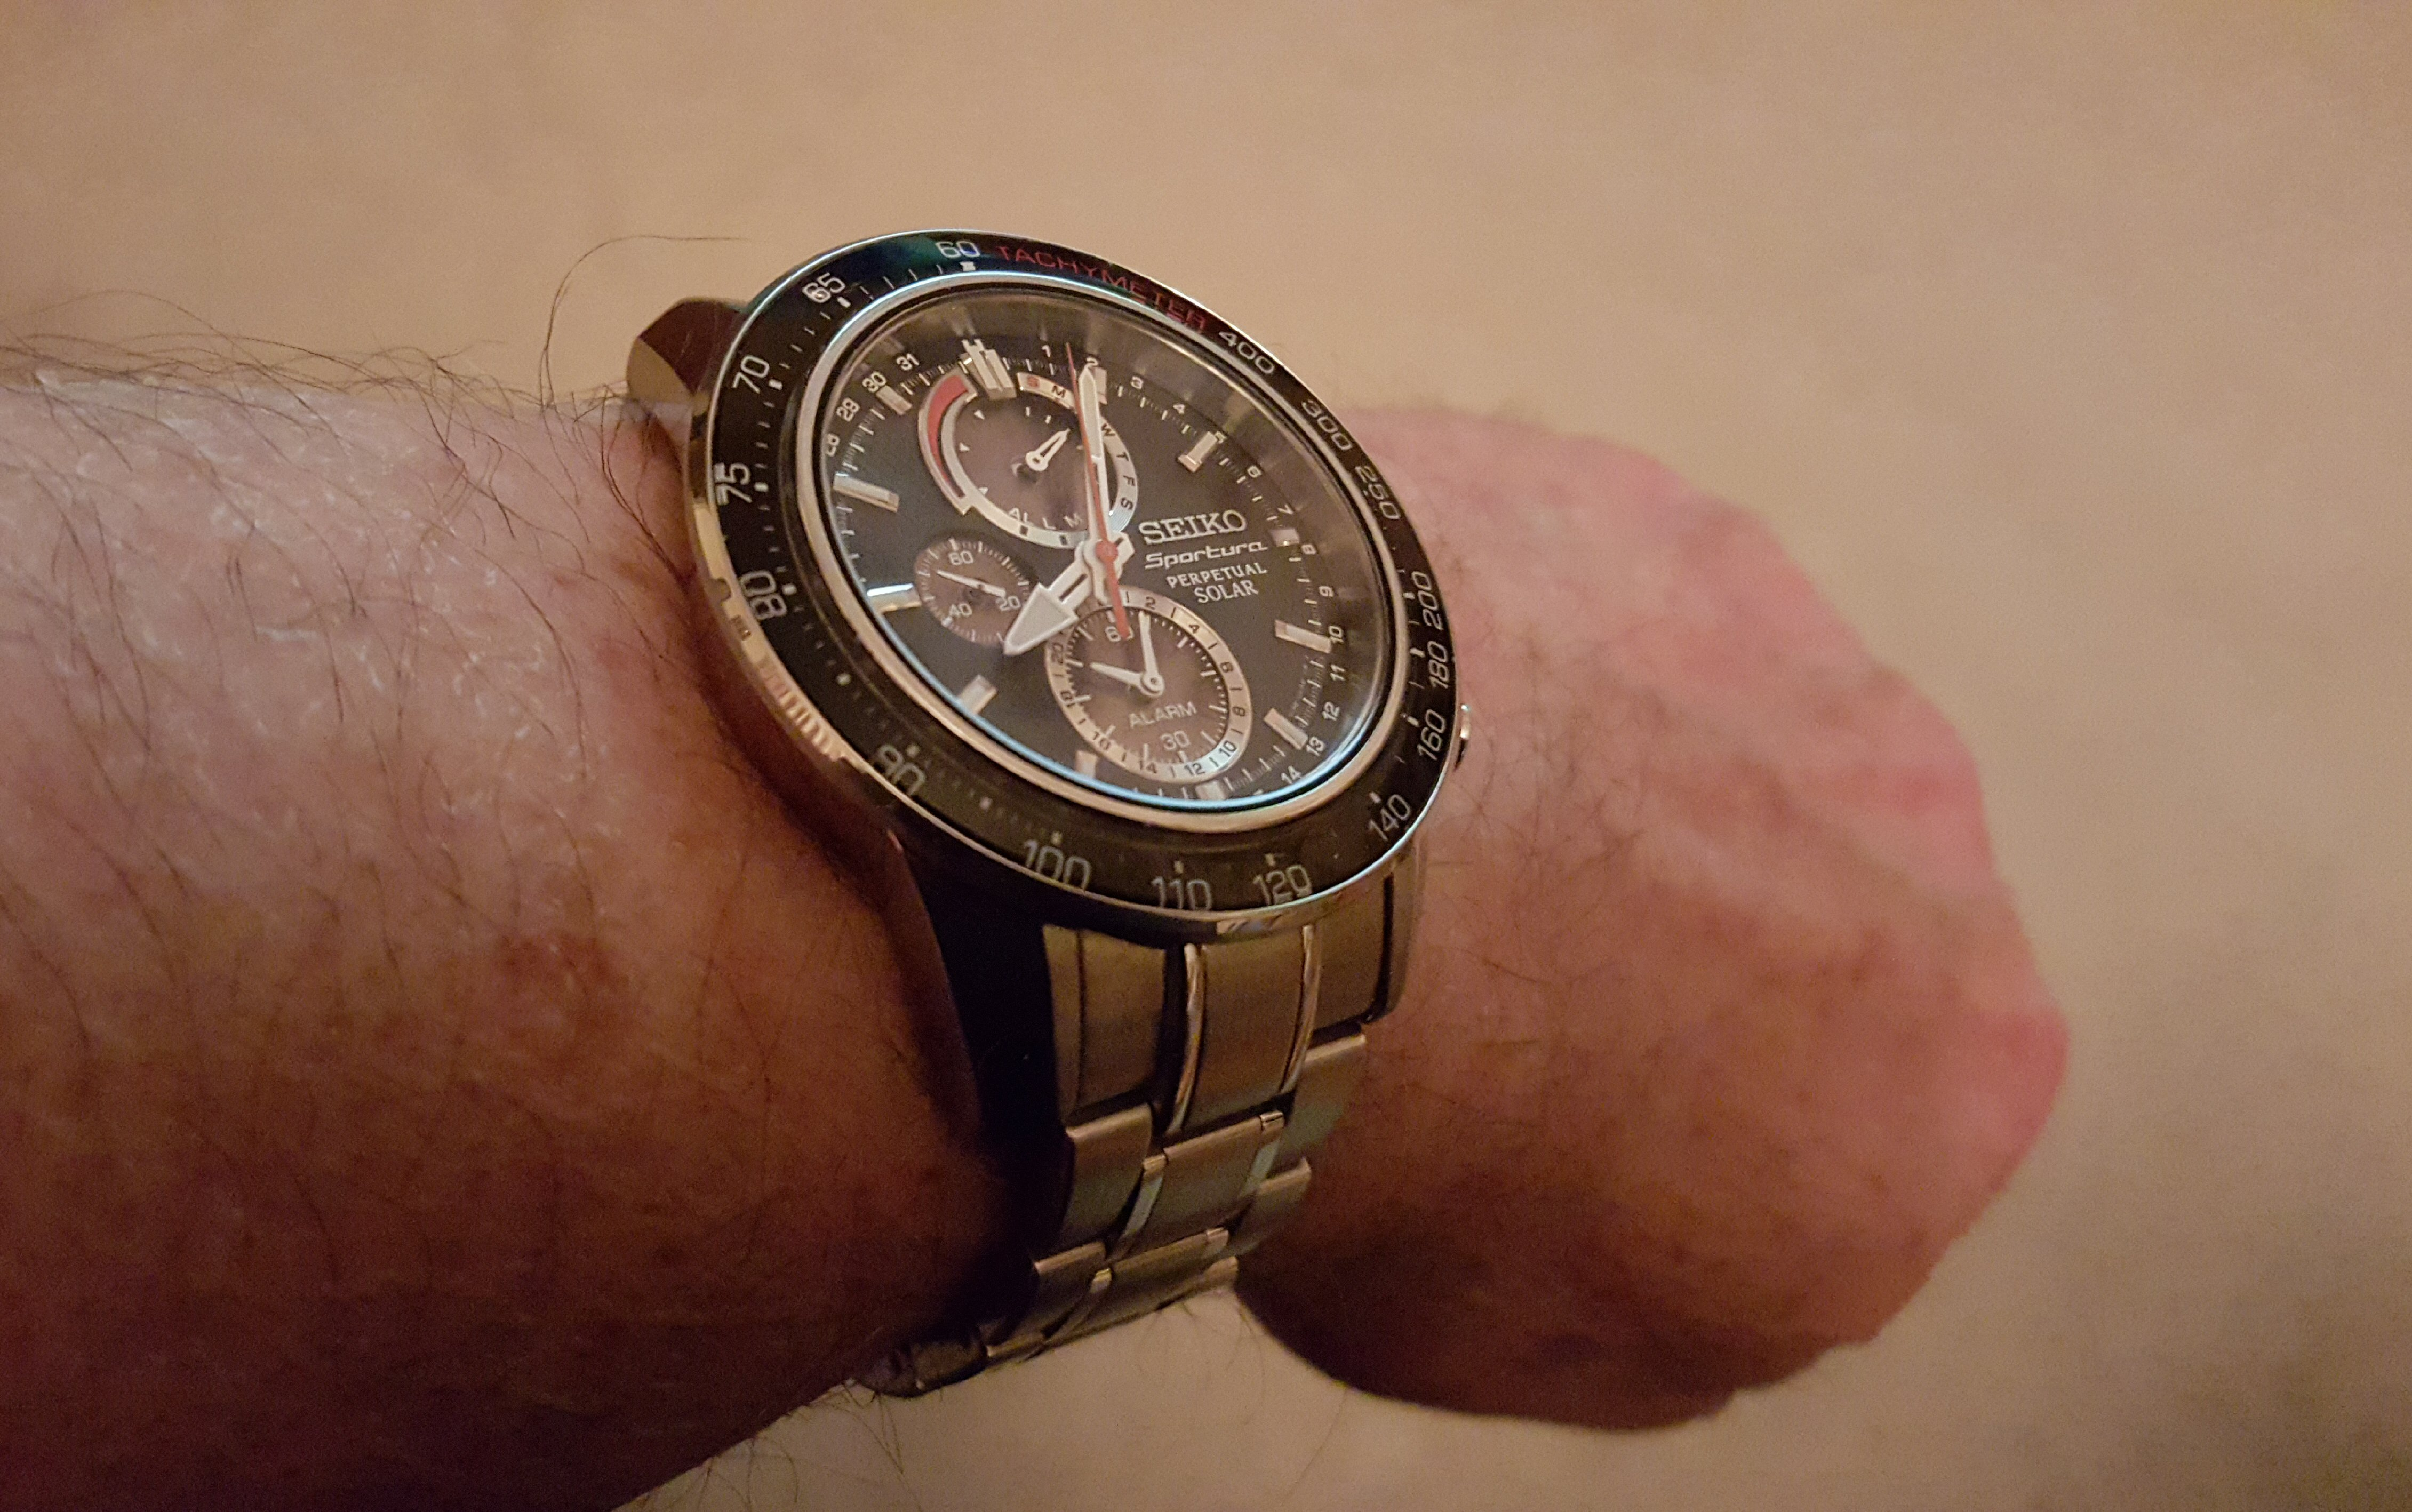 daf5ceff3 Seiko is a long established manufacturer of high quality timepieces, and as  I needed to replace an old chronograph, I had Seiko high on the list, ...